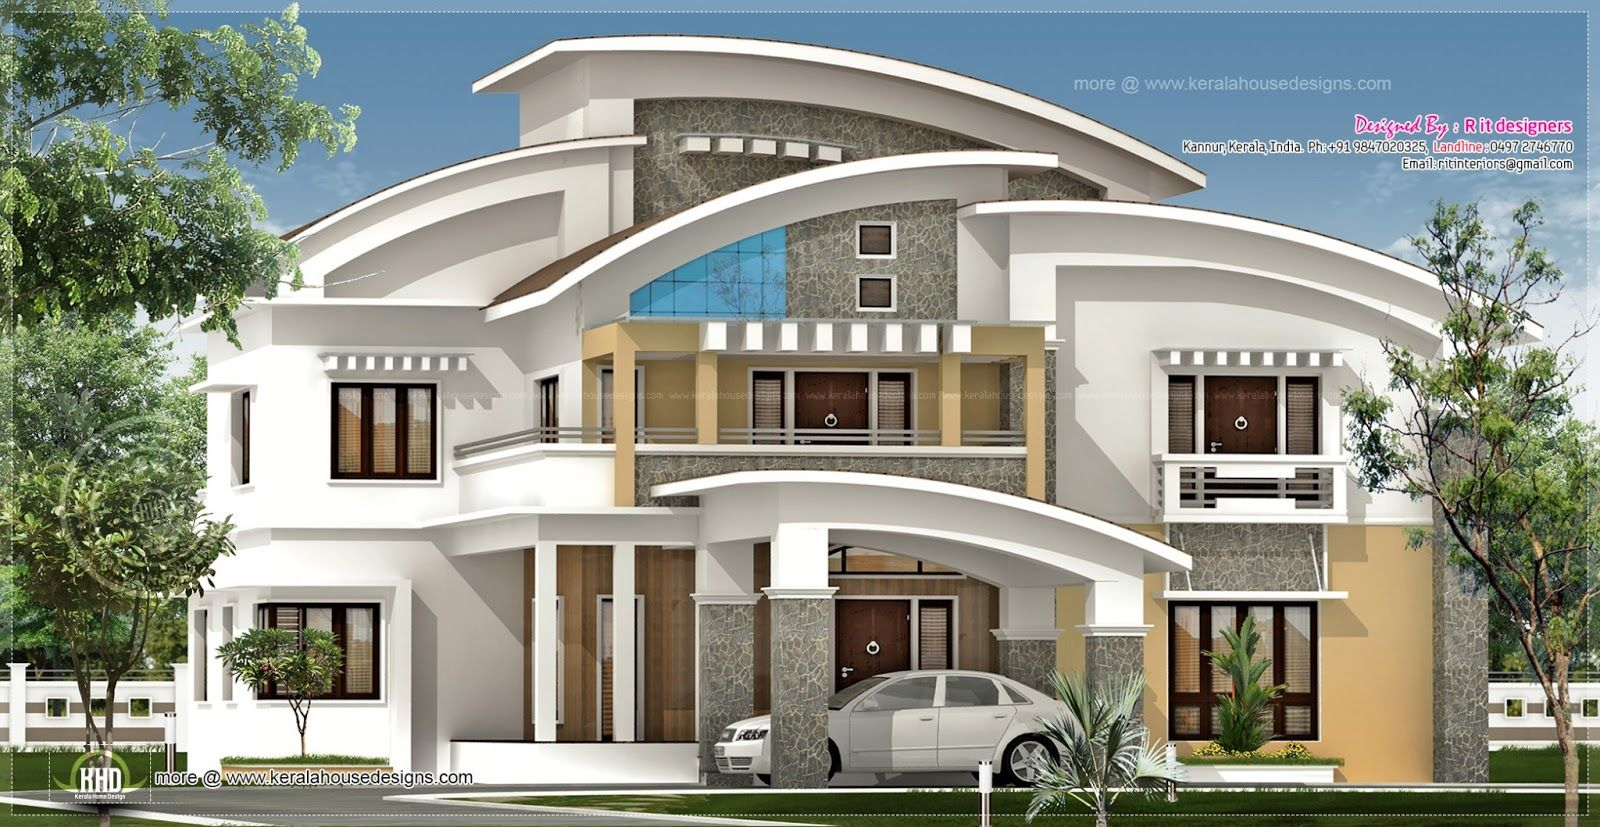 Awesome luxury homes plans 8 french country luxury home for Luxury home designers